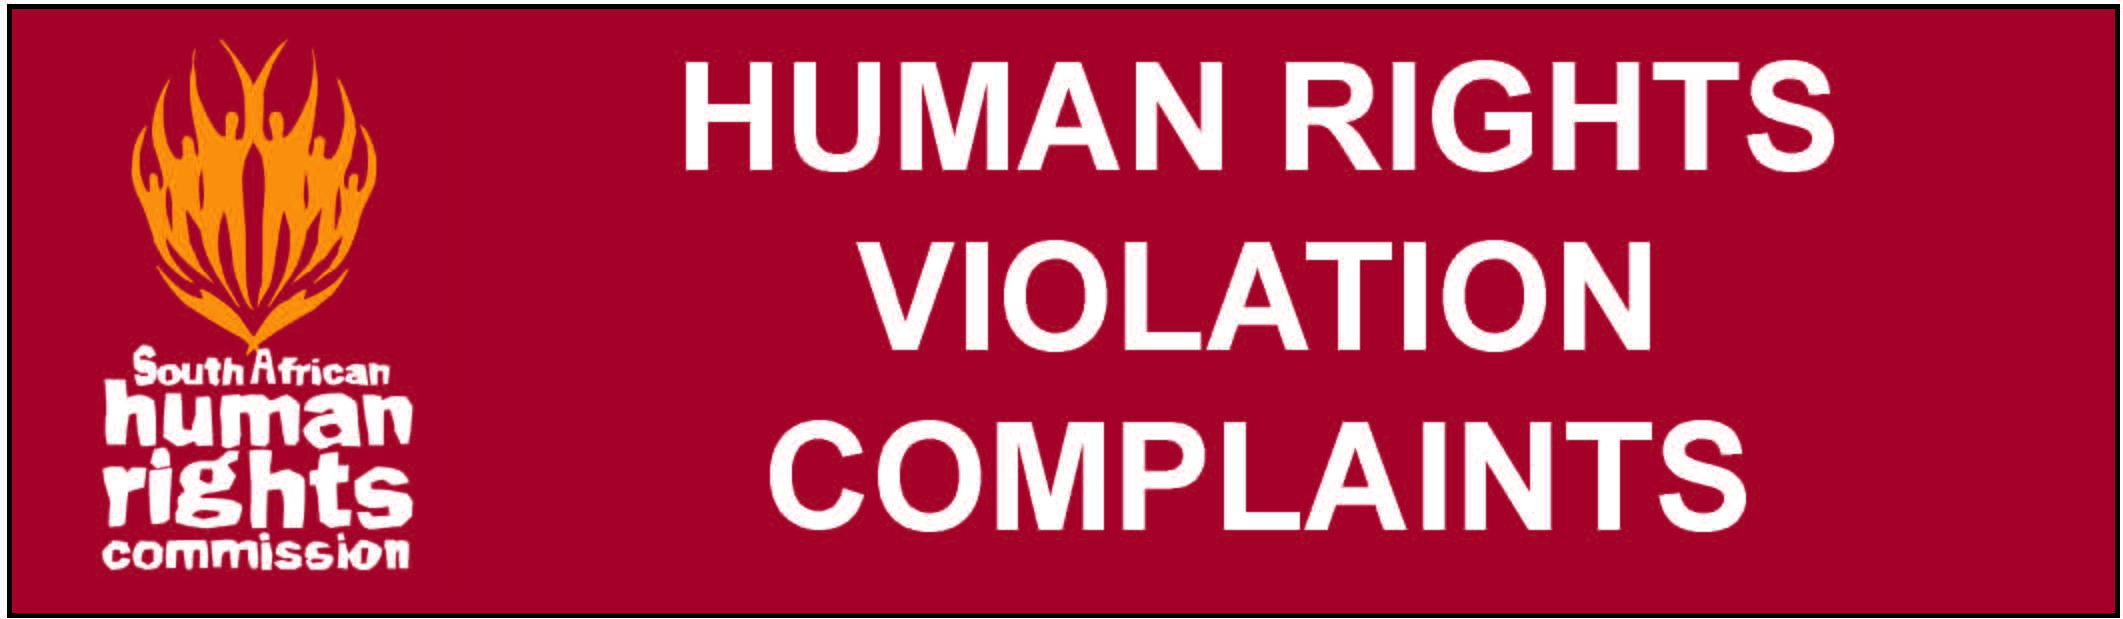 home to lodge a human rights violation complaint click here